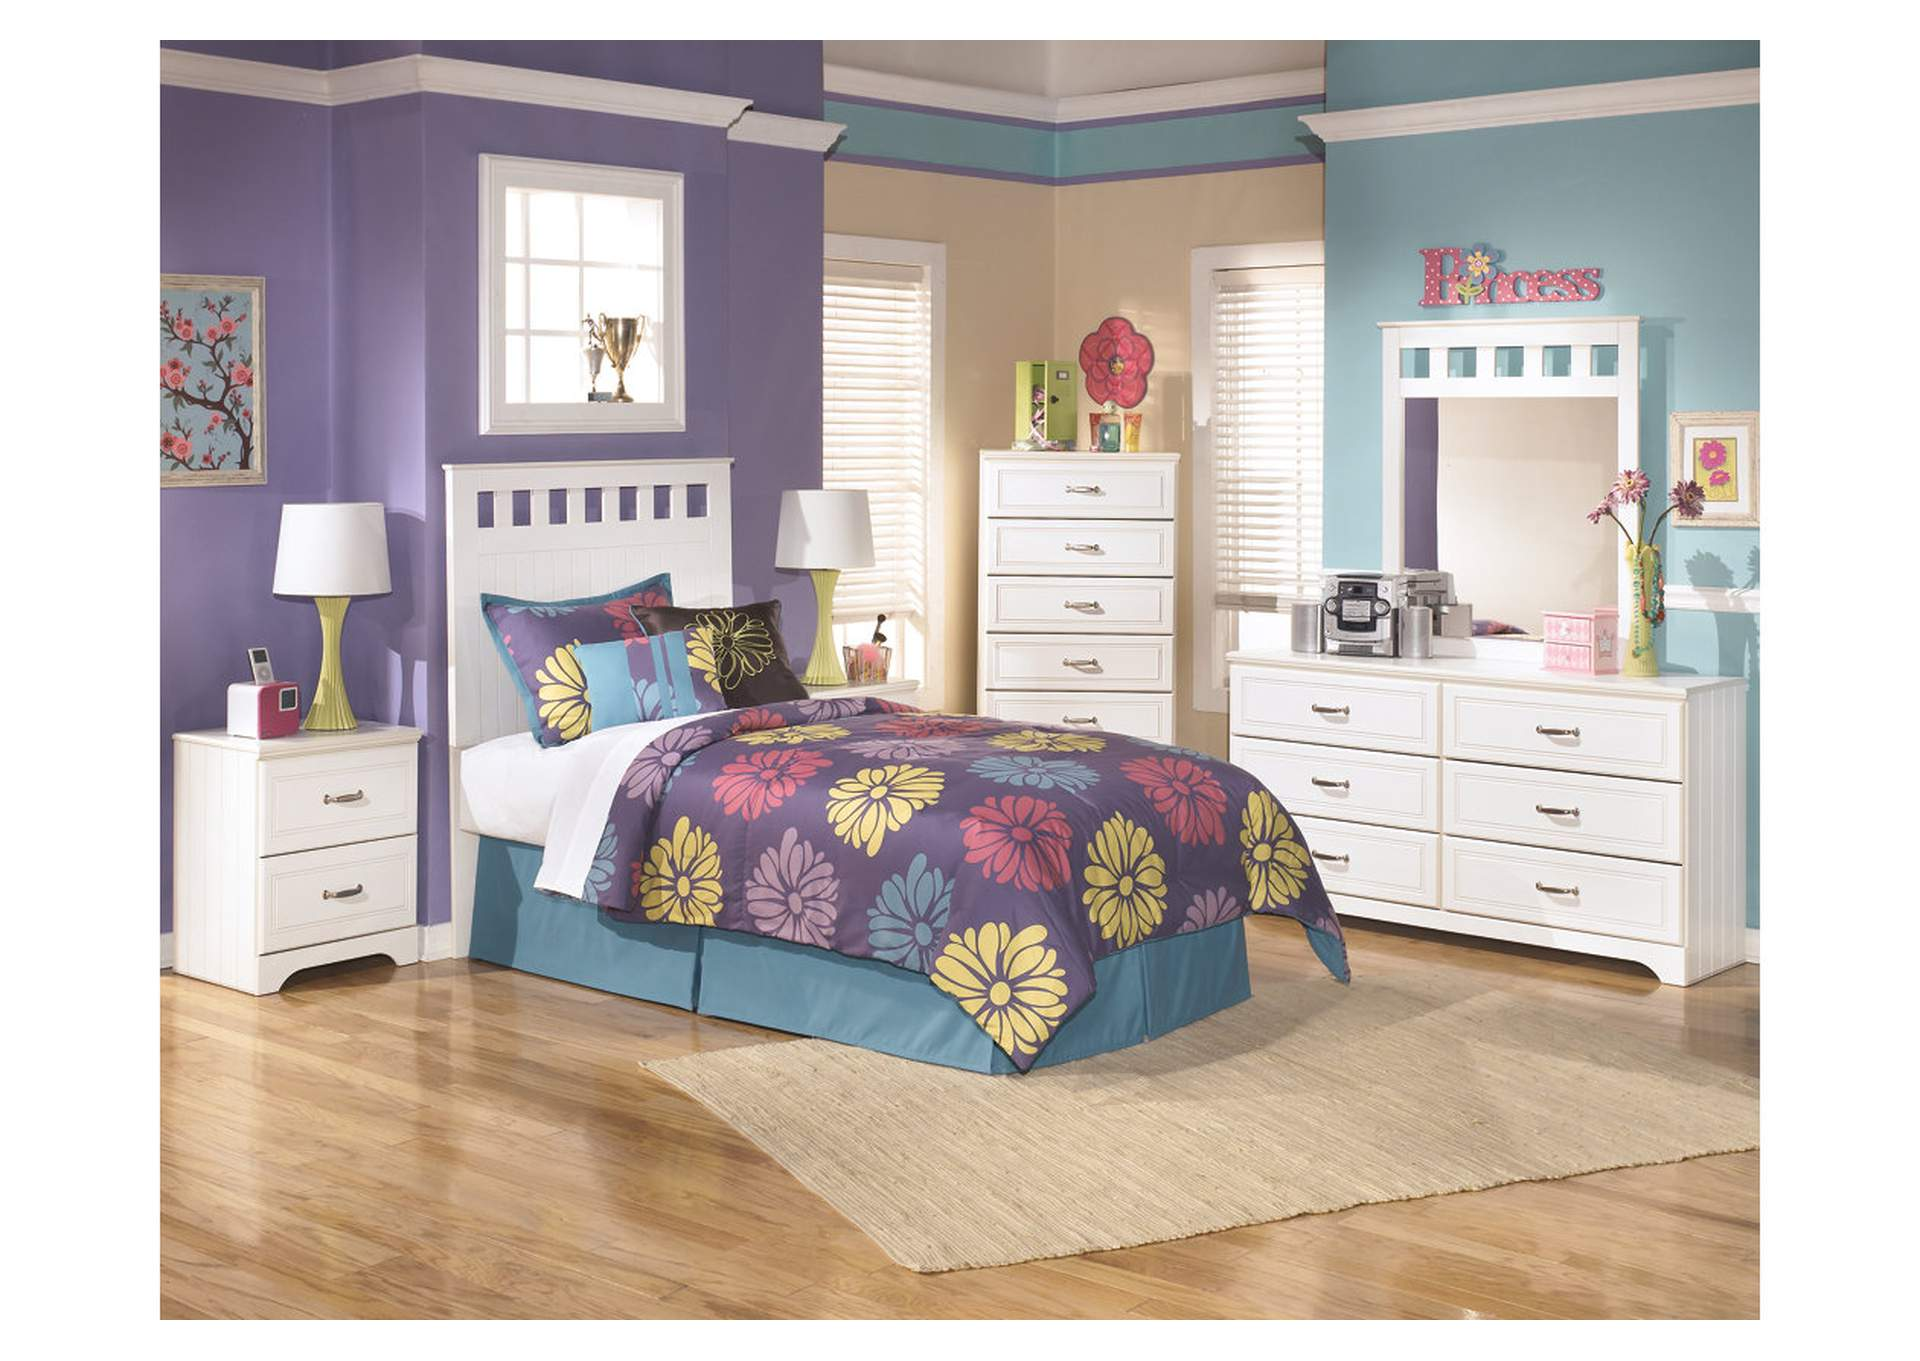 Lulu Twin Panel Headboard, Dresser & Mirror,ABF Signature Design by Ashley